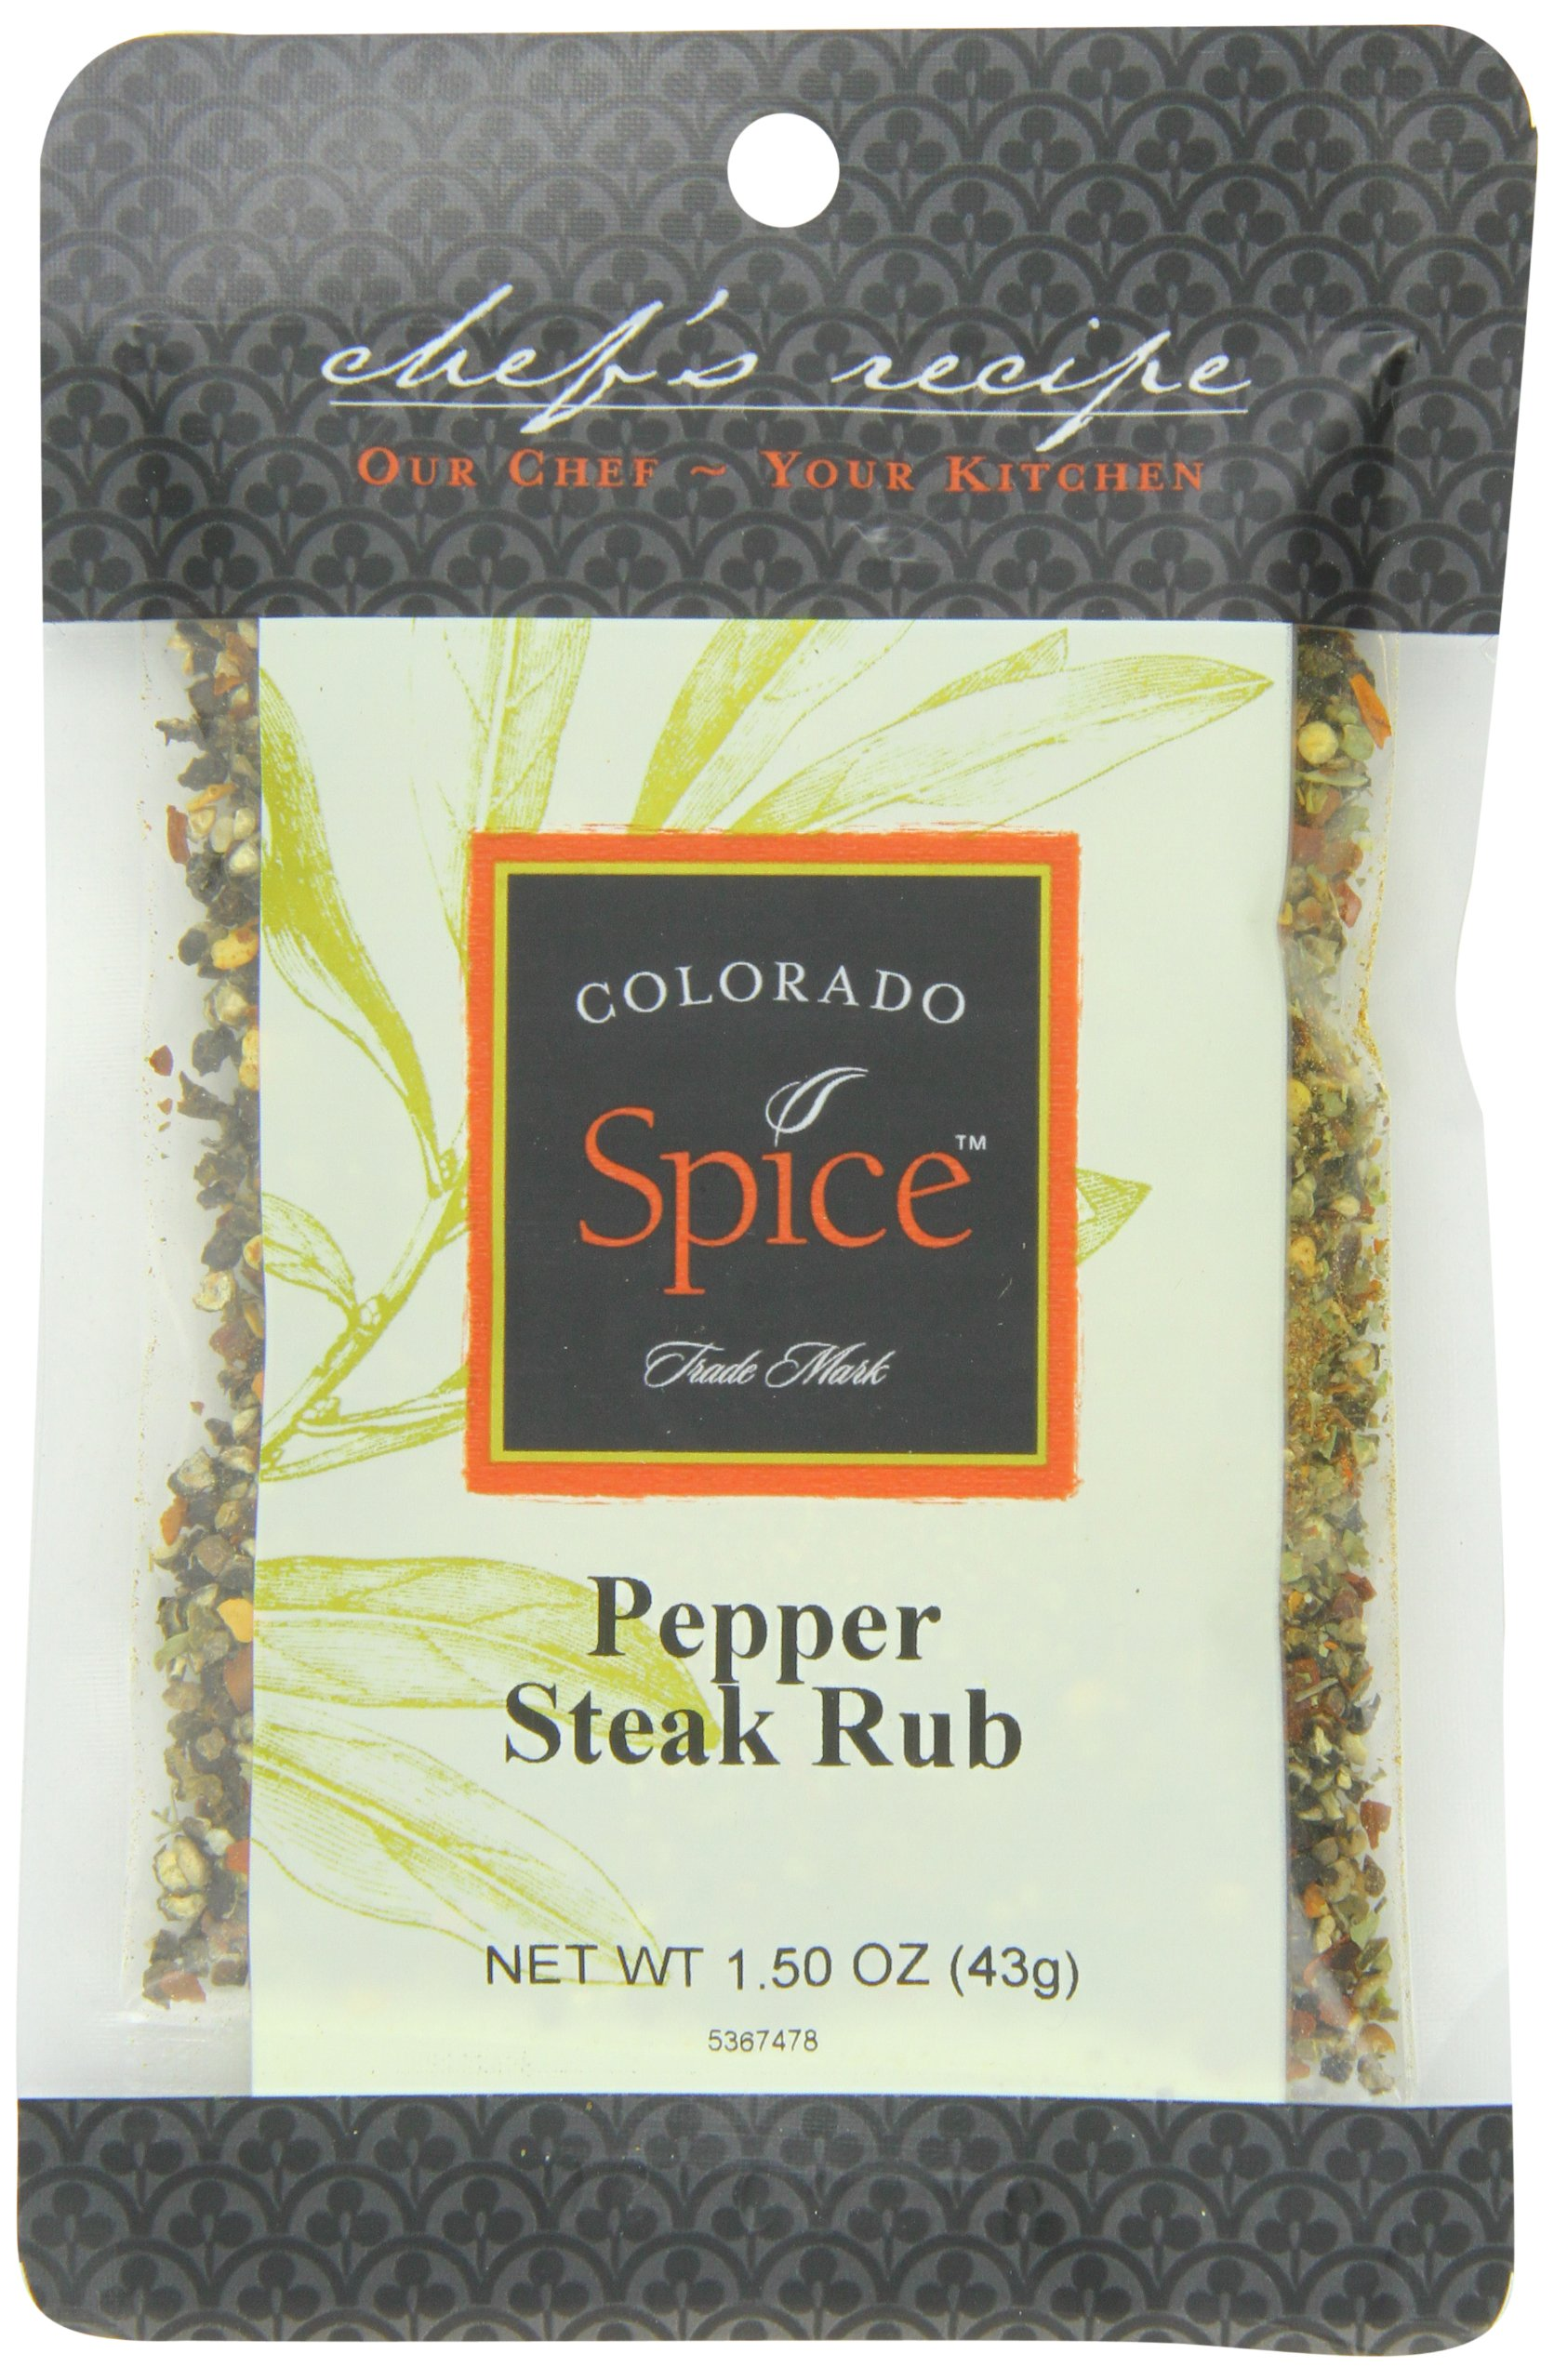 Colorado Spice Company, Beef, Poultry, Pork and Lamb Spice, Pepper Steak Rub 1.5-Ounce Packet (Pack of 12)